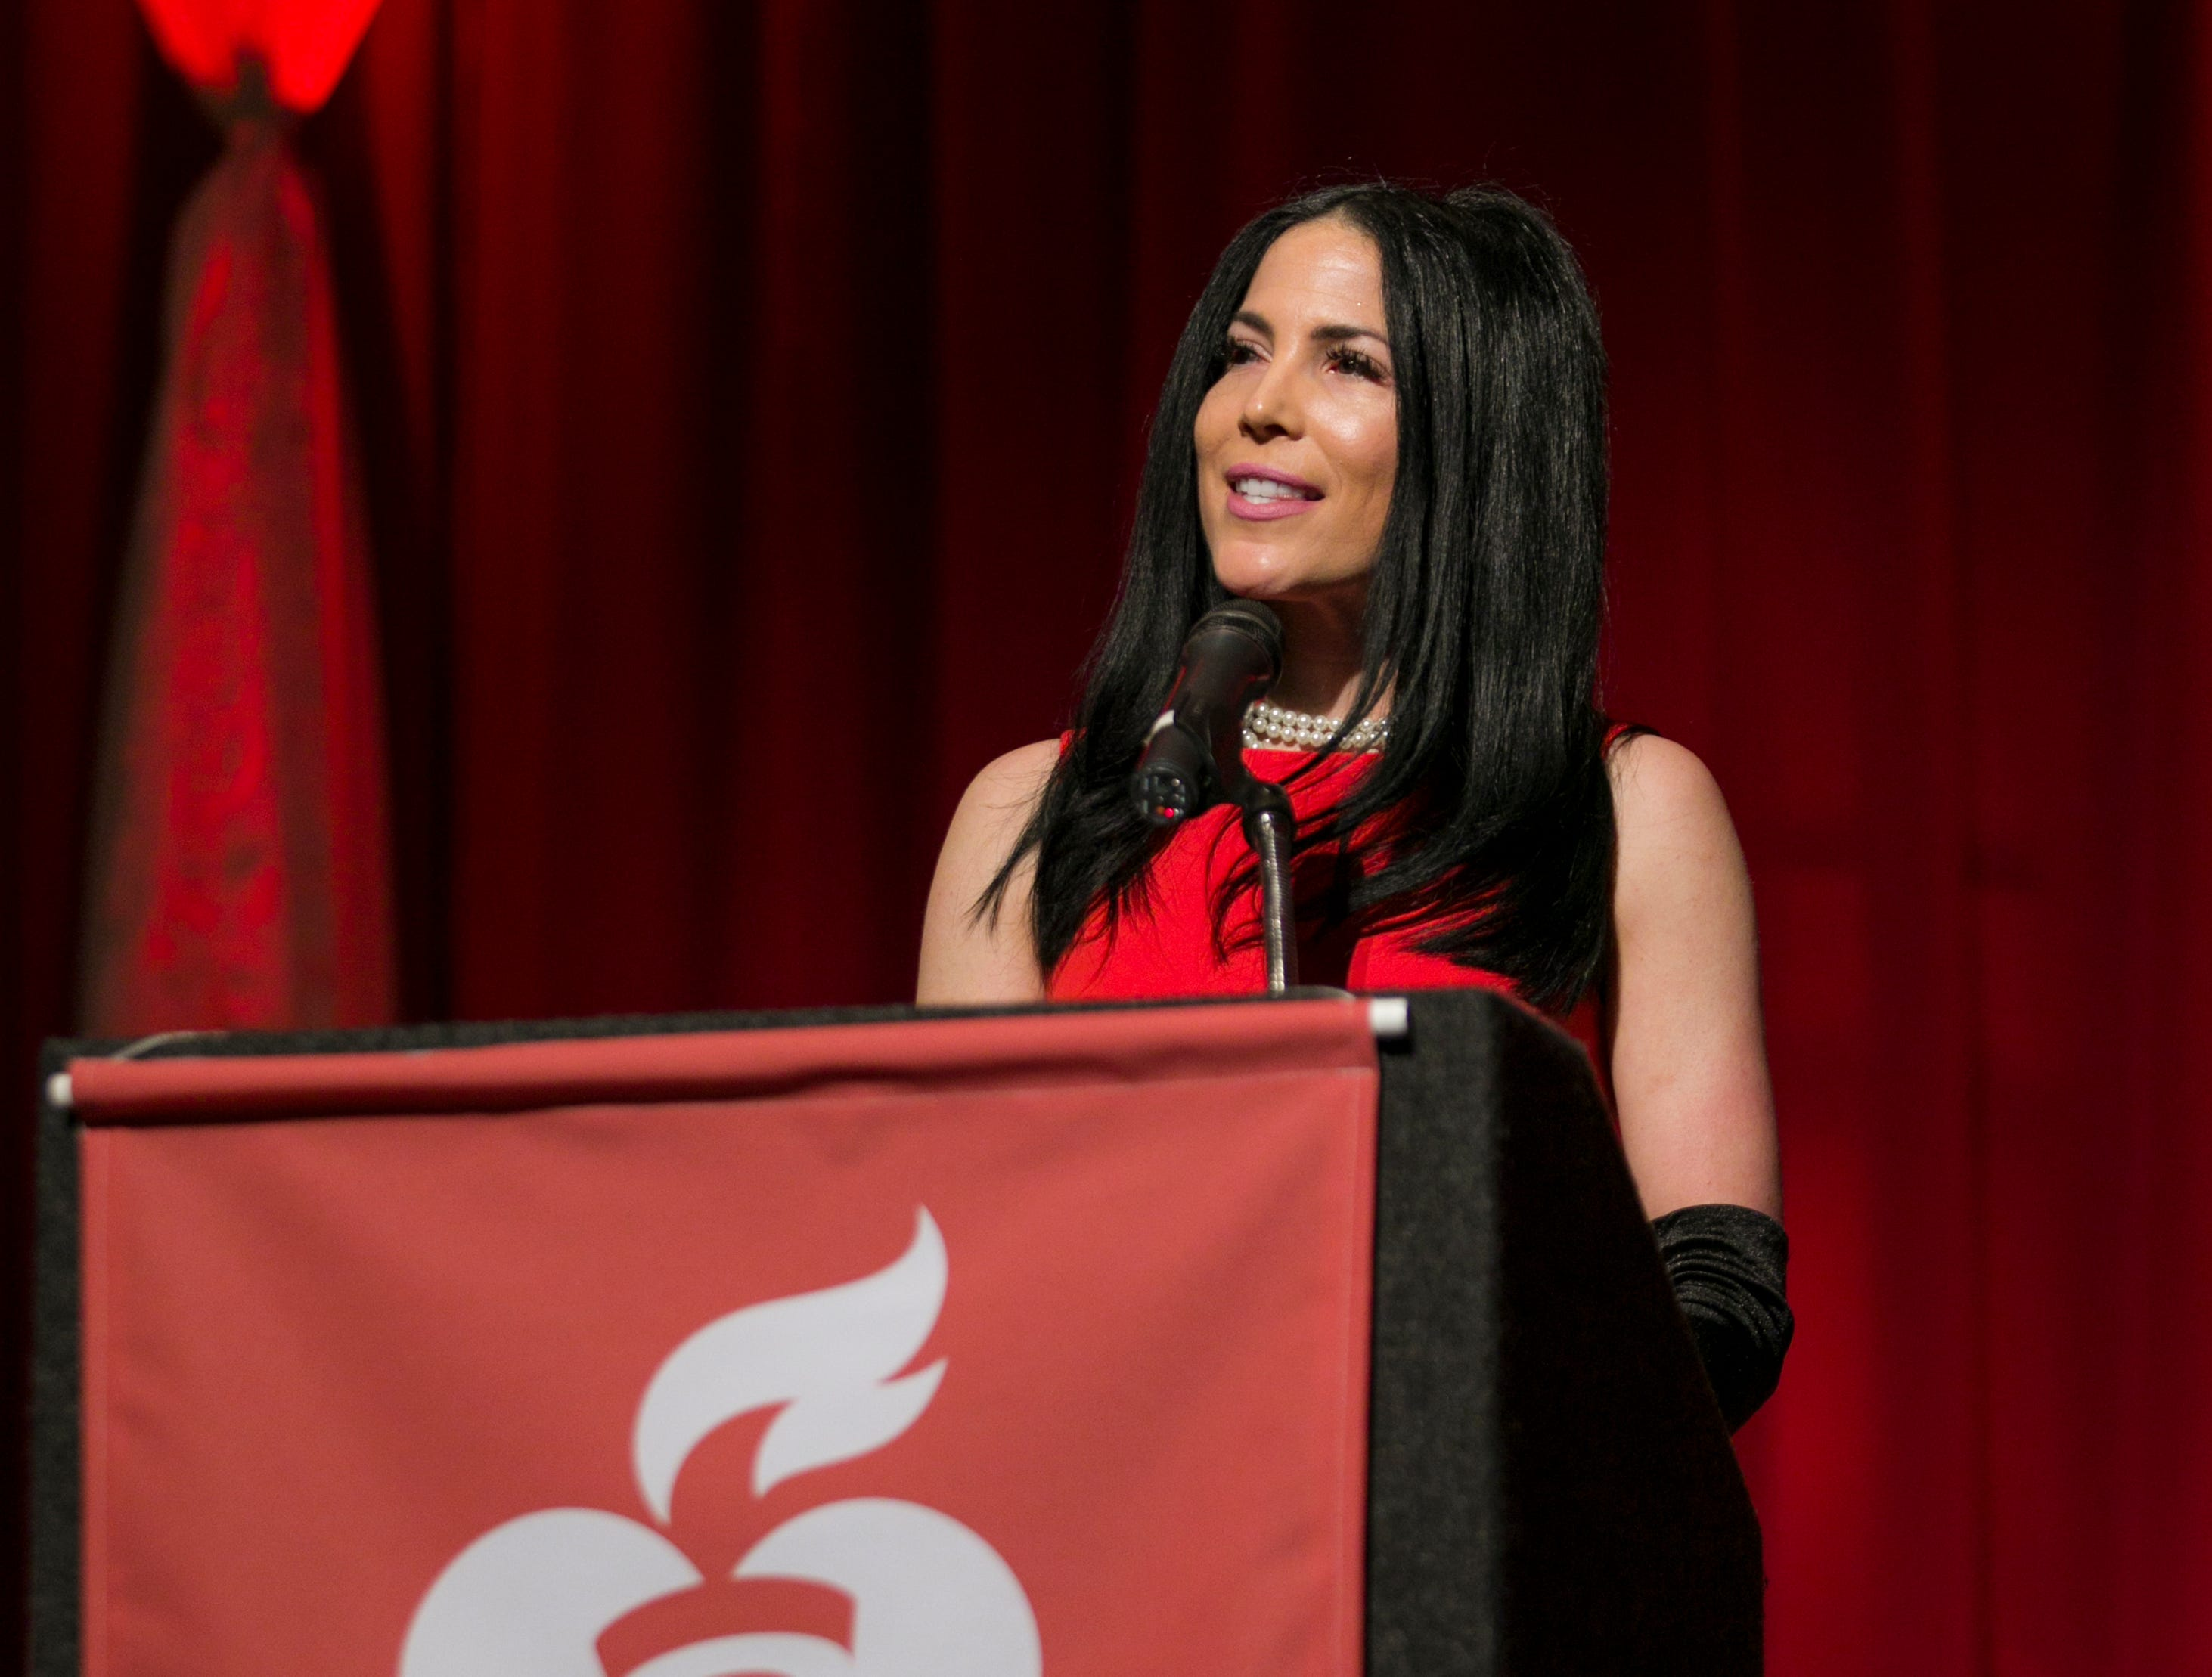 Tiffany Coury, COO Northern Nevada Medical Center and 2019 Go Red for Women Chair, speaks during the 15th Annual Go Red for Women Luncheon on Friday night,March 1, 2019 held at the downtown Reno Ballroom.